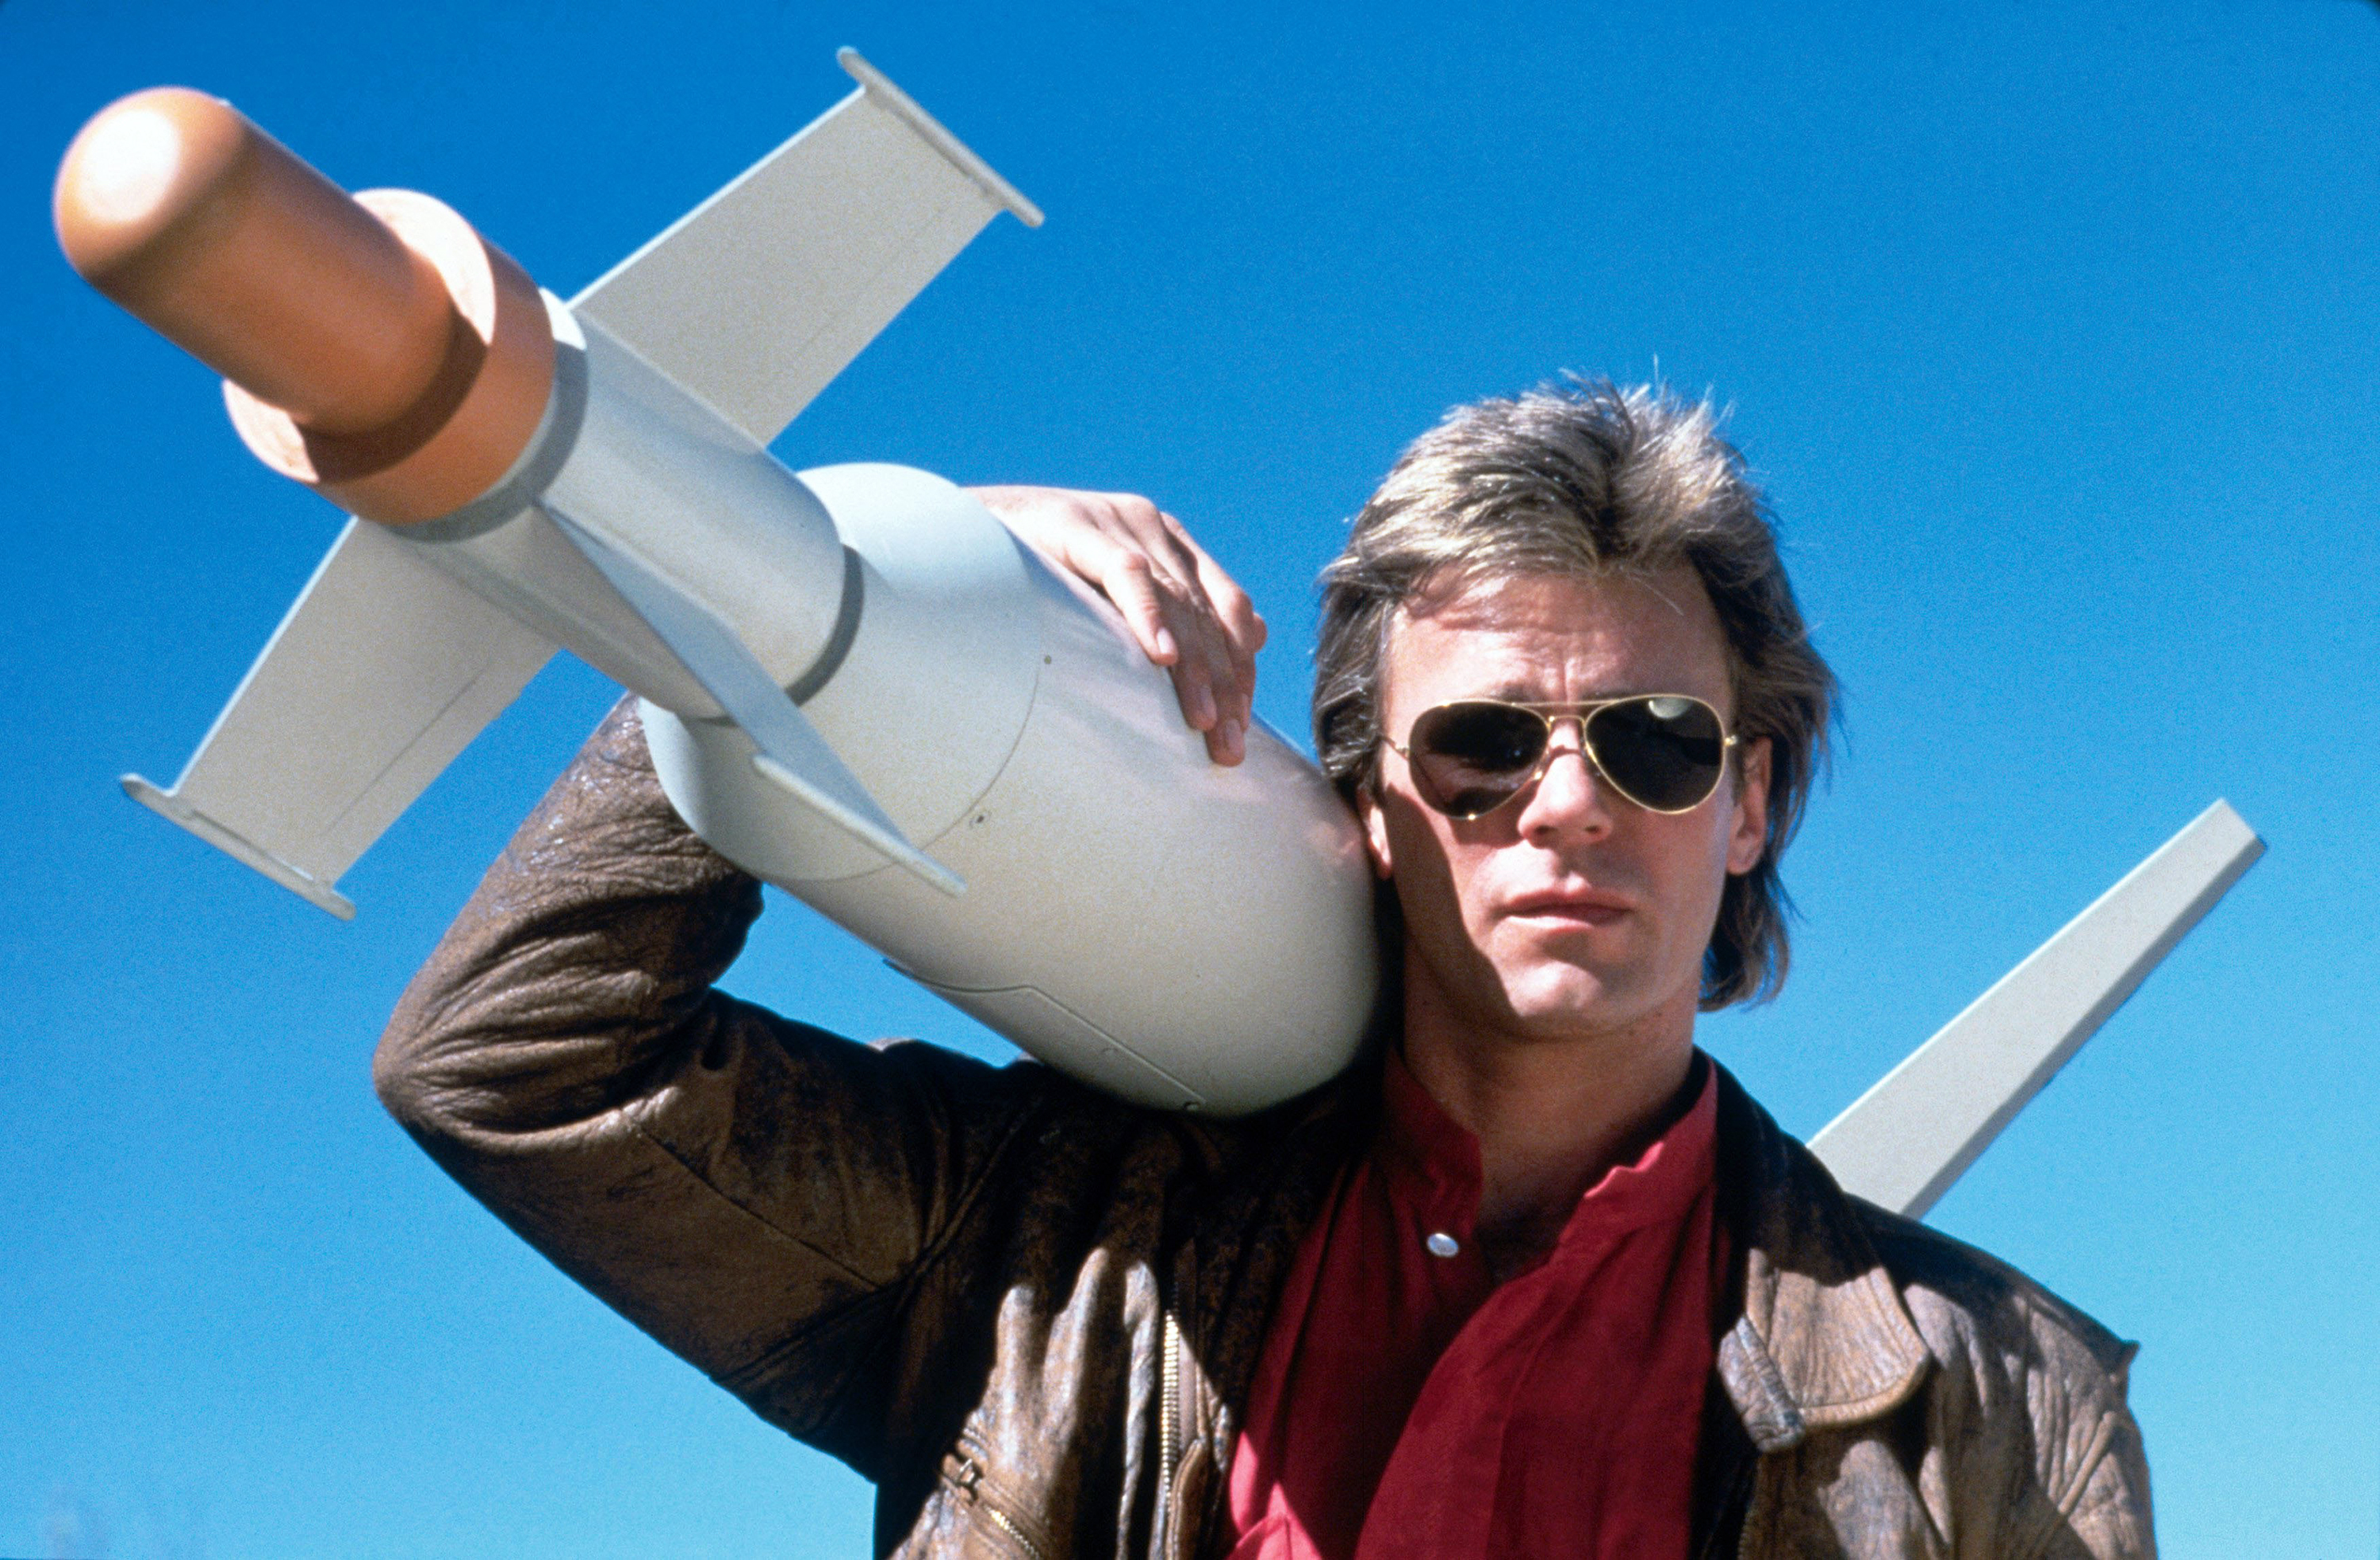 Richard Dean Anderson portrayed MacGyver with the perfect combination of cool and nerdy